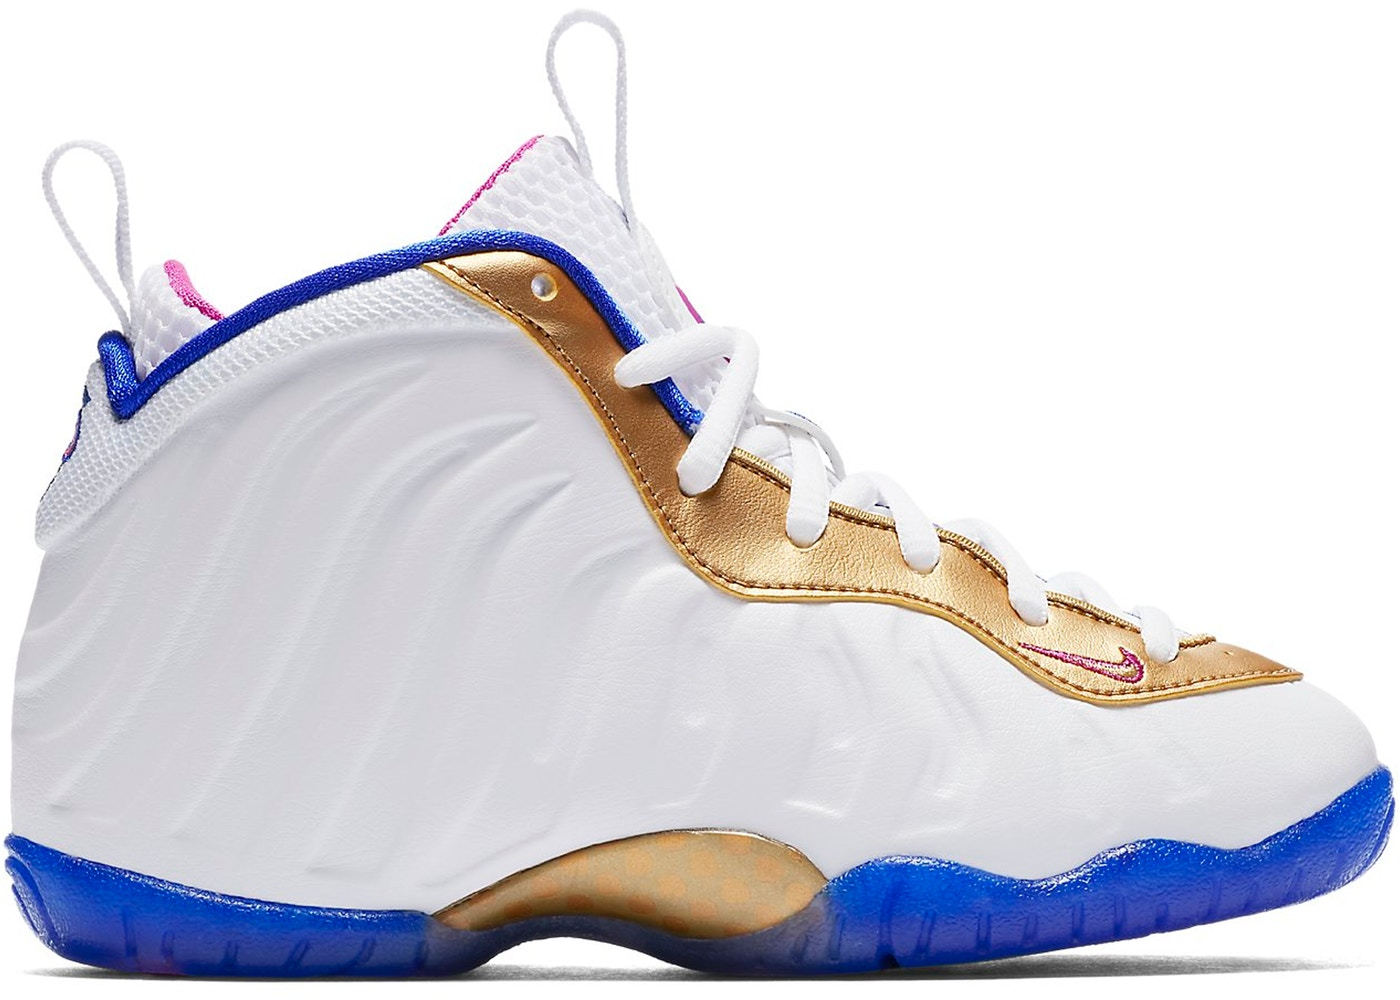 on sale 66d3a 4afc4 Air Foamposite One Peanut Butter & Jelly (PS)